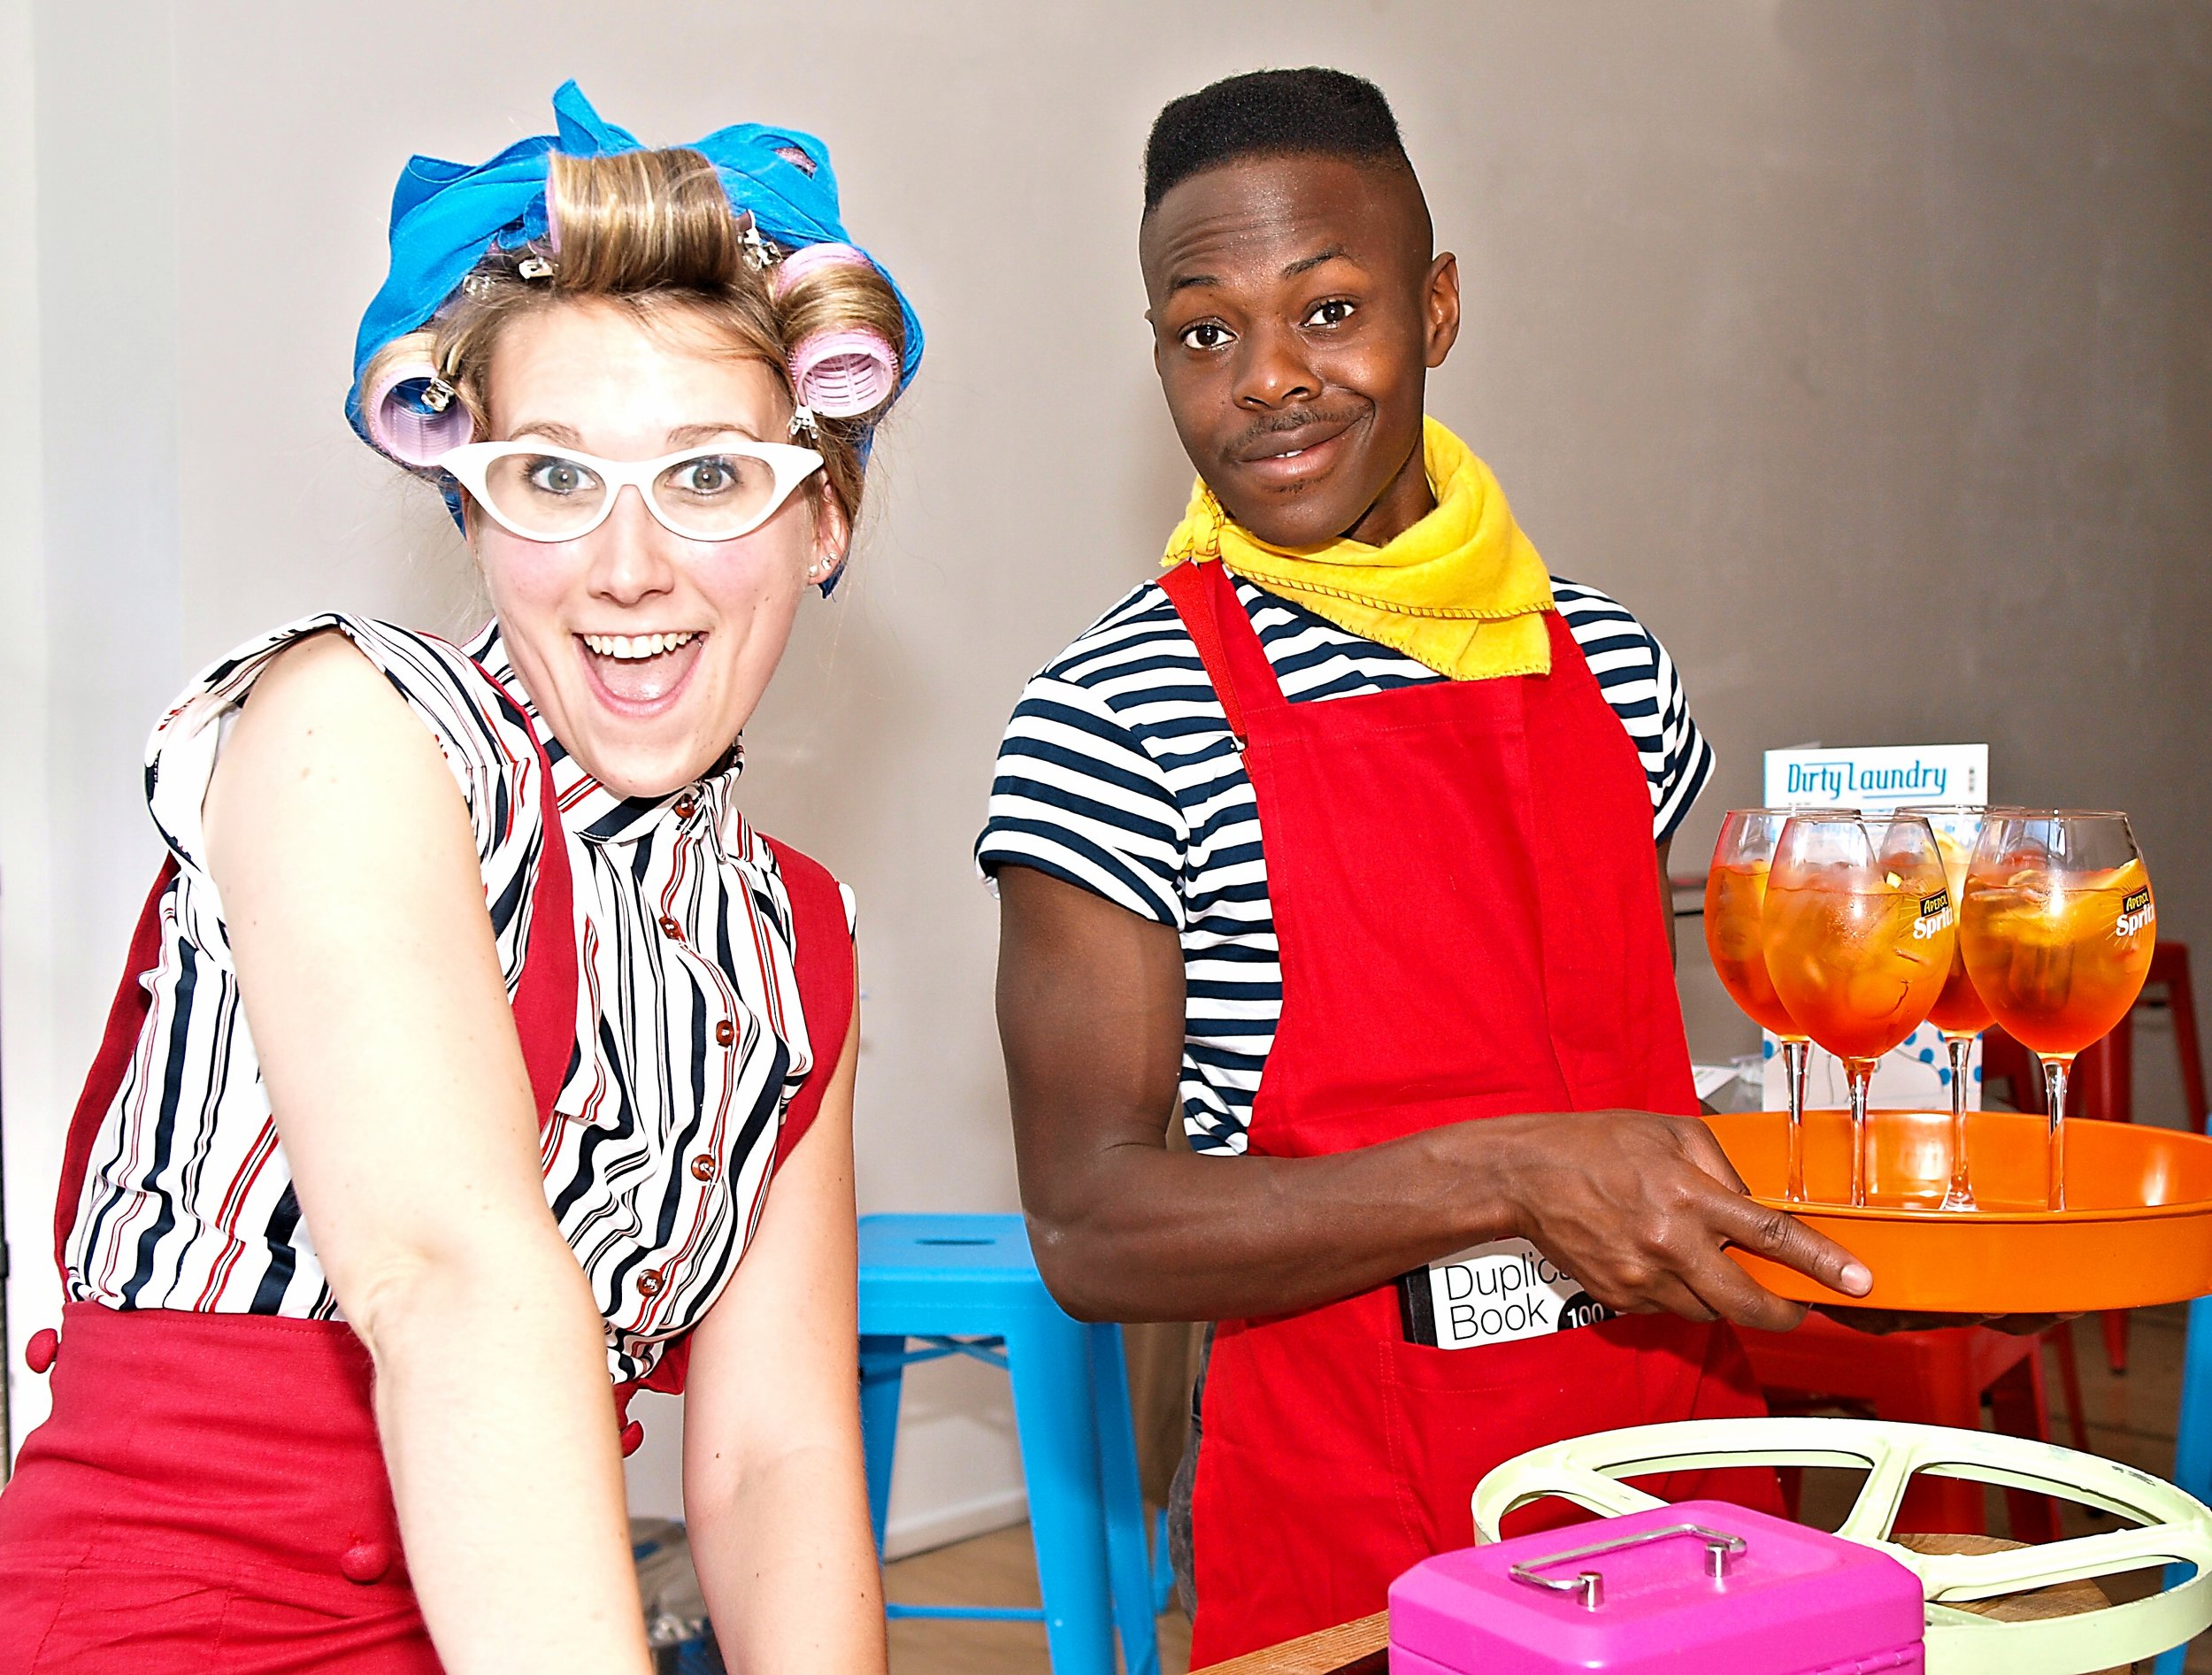 Washing machine made cocktails anyone? Waiter and Waitress serving squeaky clean cocktails at Meredith Collectives glamorous 'Dirty Laundry' event 2015.